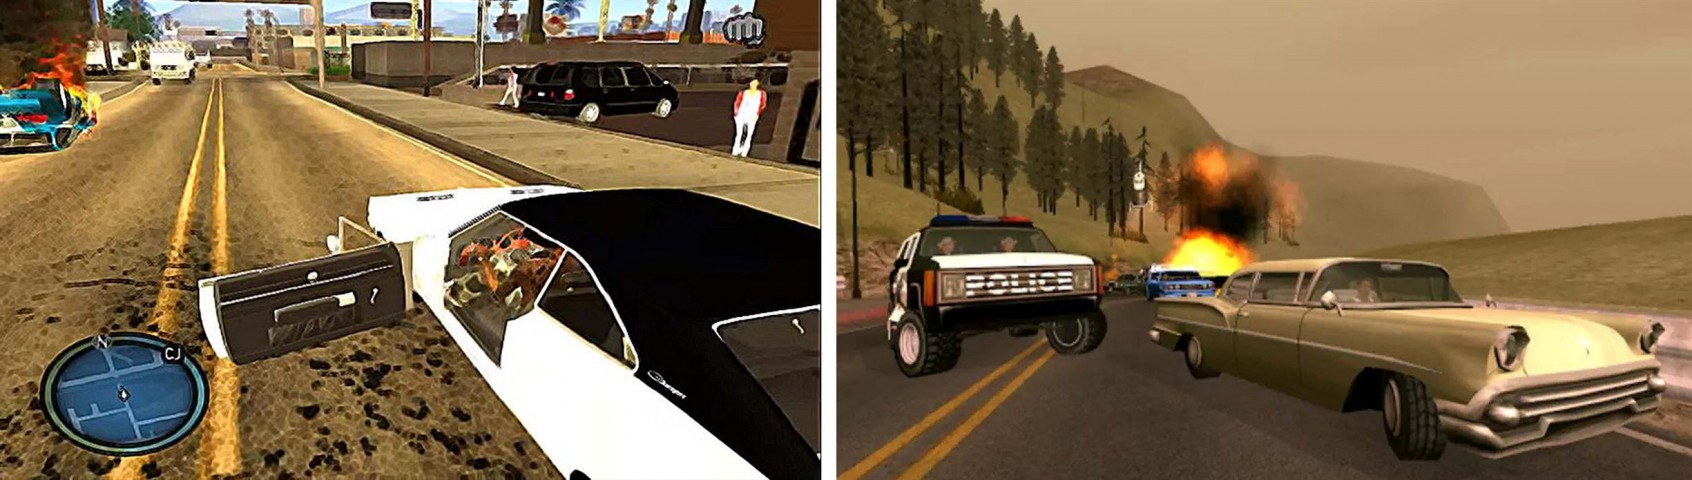 grand-theft-auto-san-andreas-apk-free-download.jpg